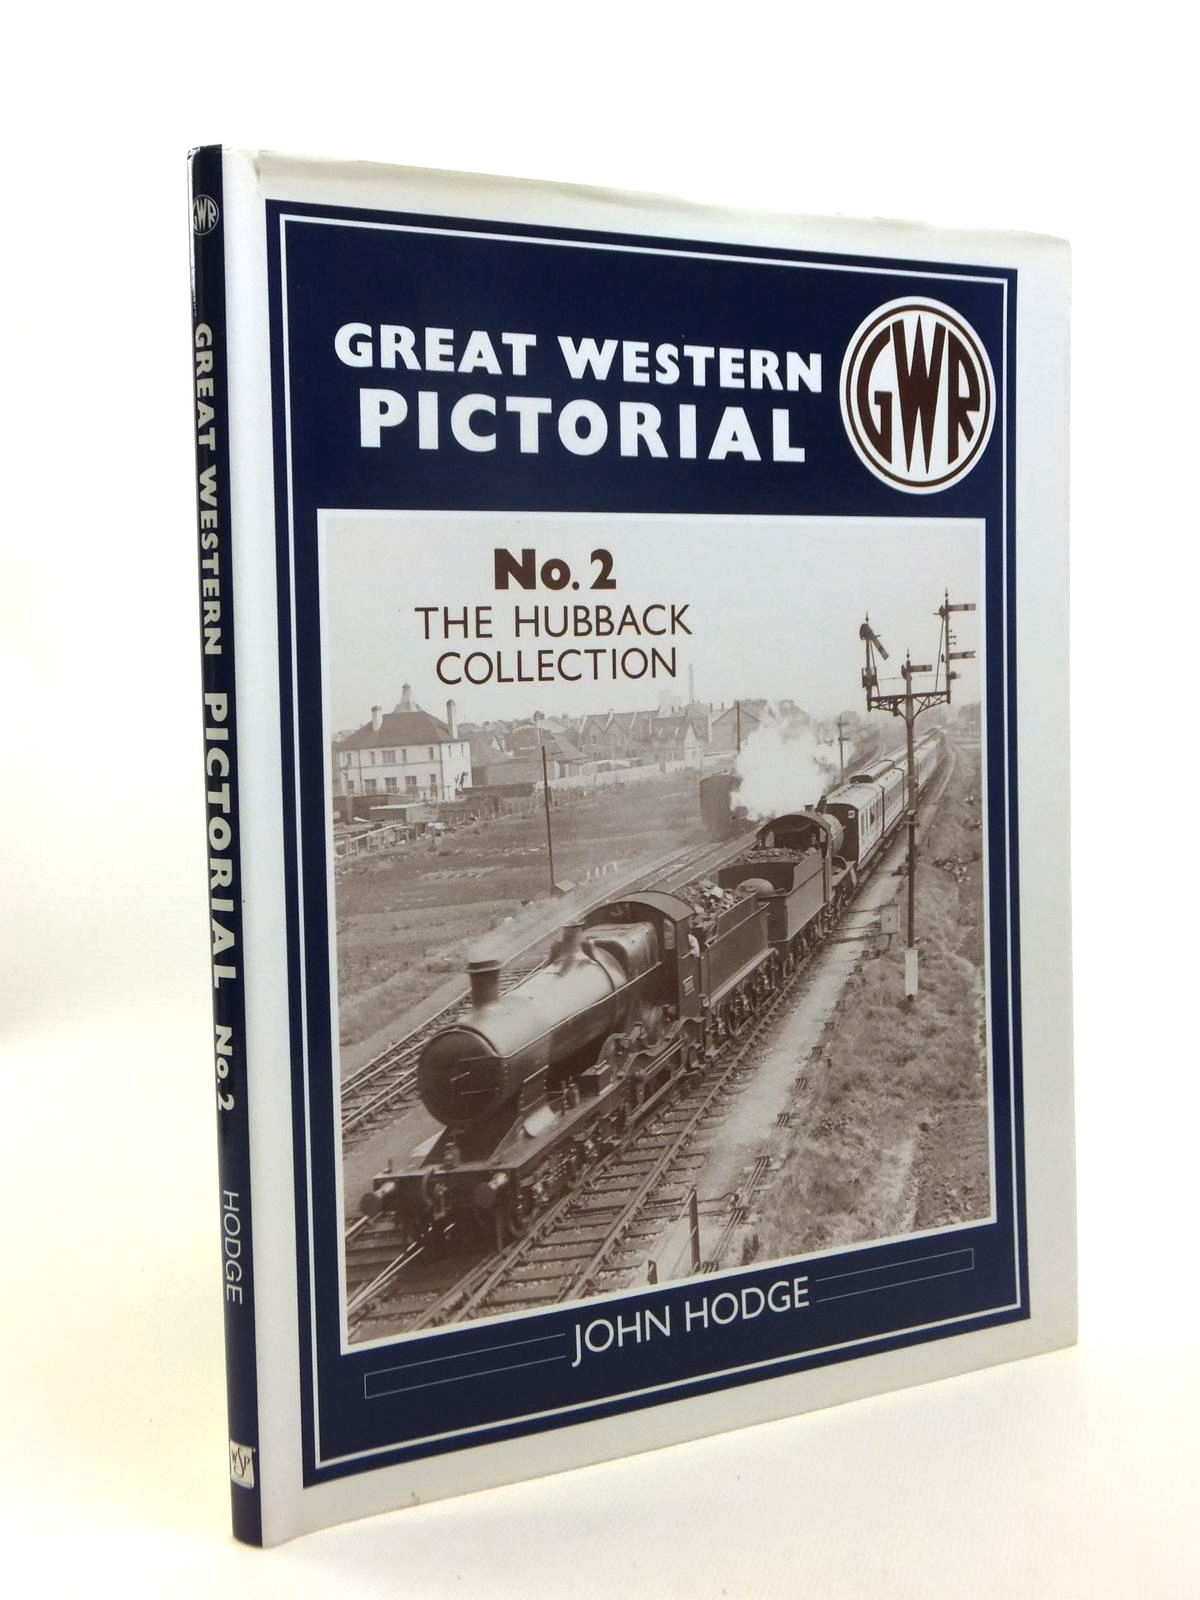 Photo of GREAT WESTERN PICTORIAL No. 2 THE HUBBACK COLLECTION